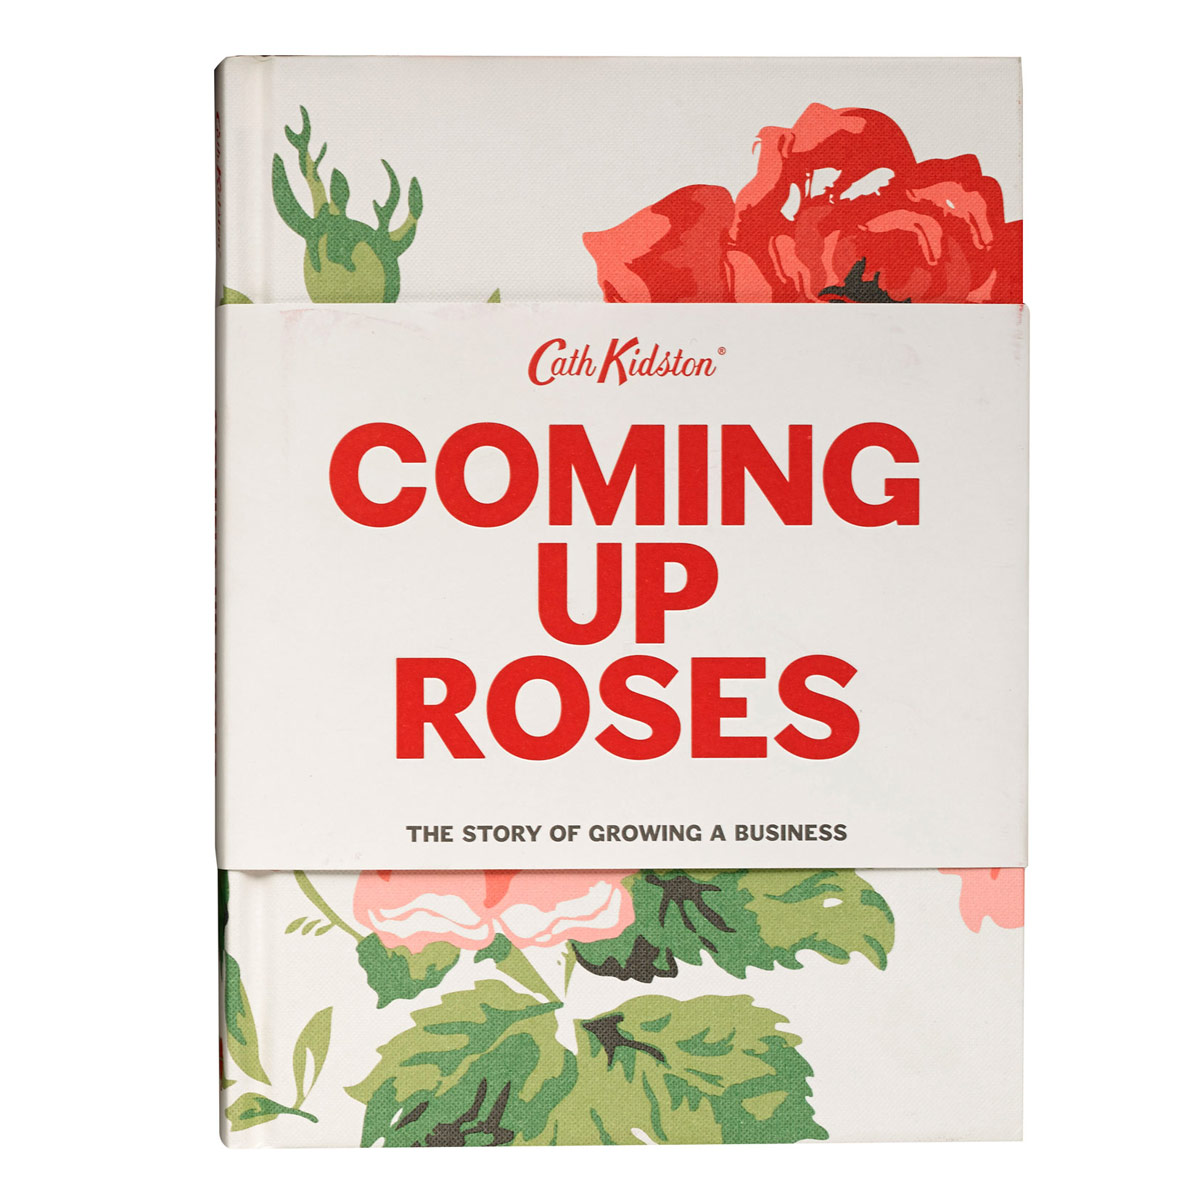 http://www.cathkidston.fr/livre-anniversaire-coming-up-roses//cath-kidston/fcp-product/1009272